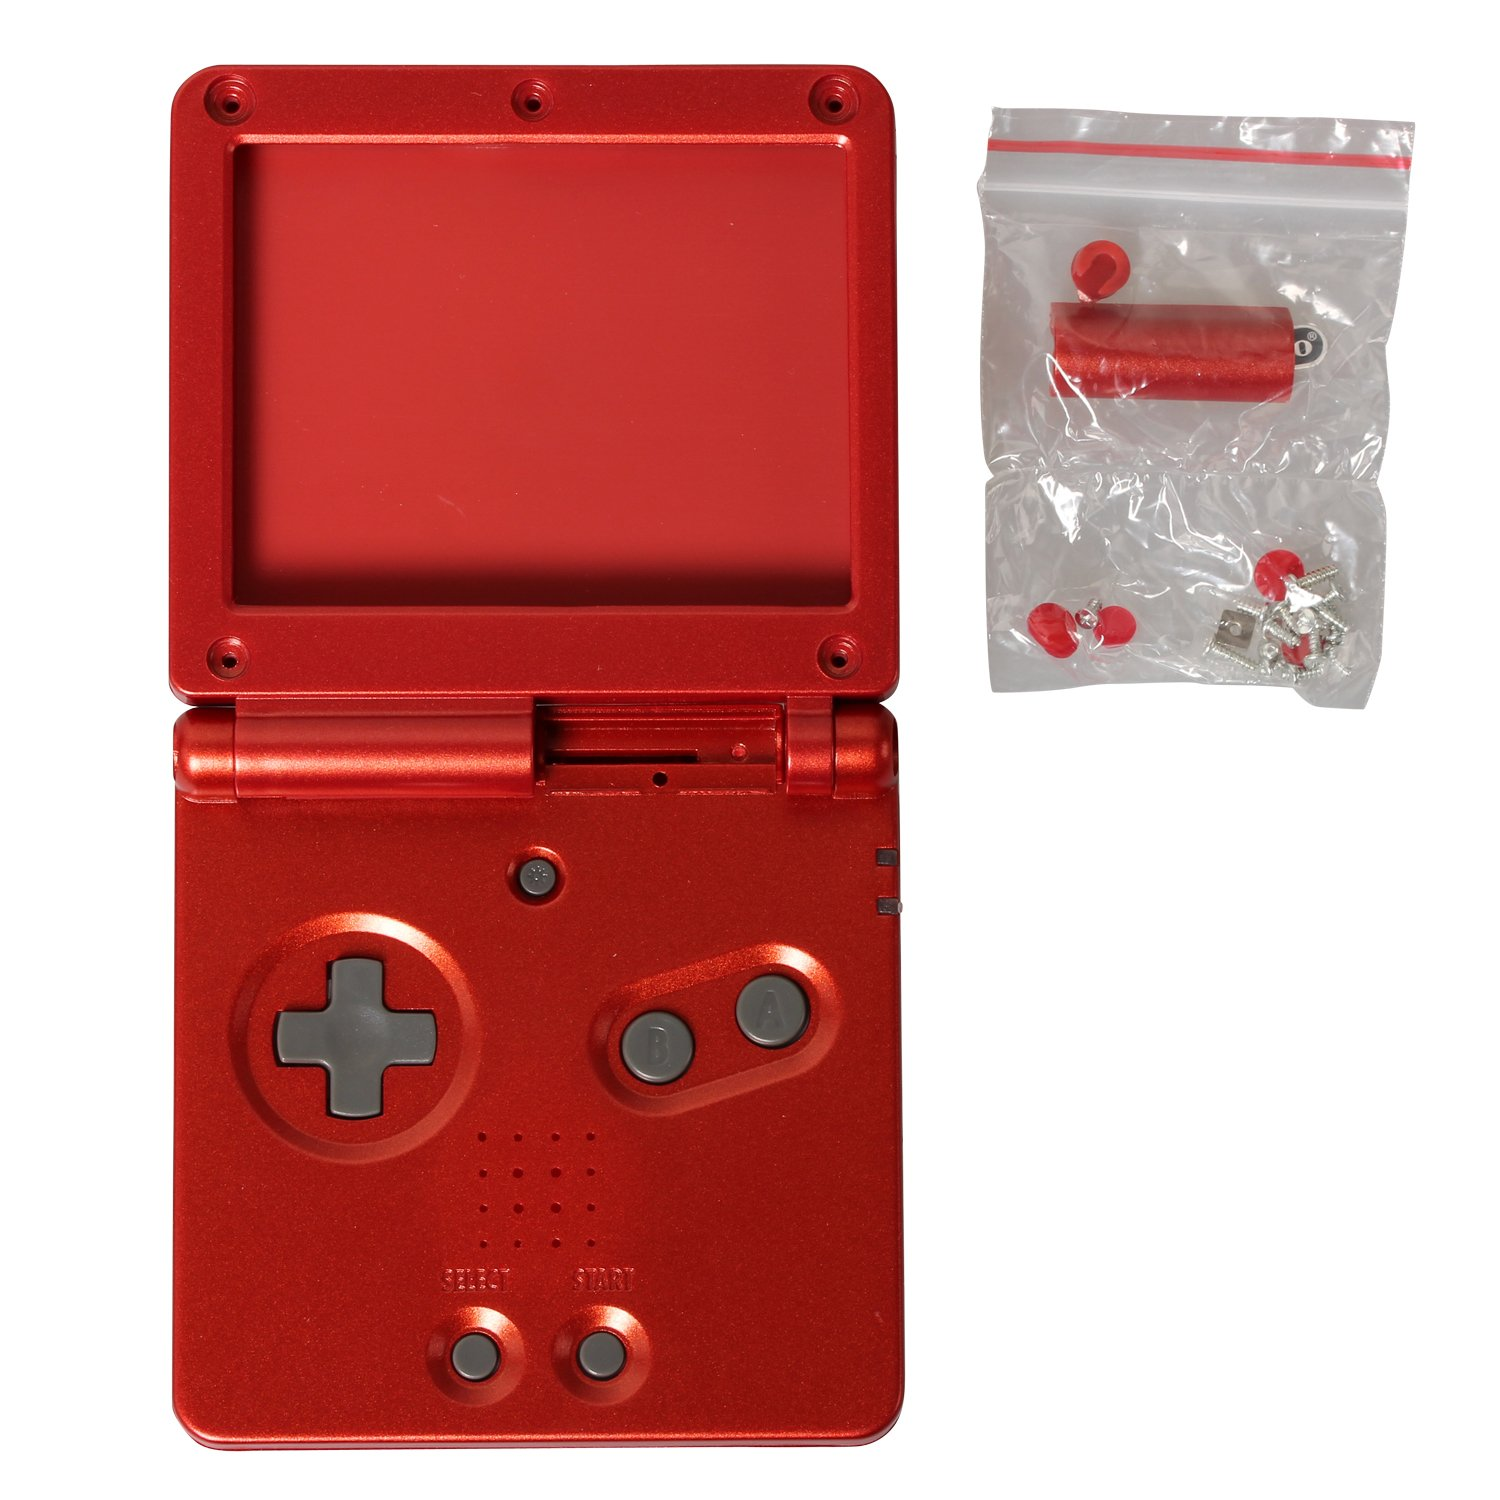 eJiasu Full Housing Shell Case Cover Pack Replacement Repair Parts for Gameboy Advance SP GBA SP (GBA SP Shell Set Red)